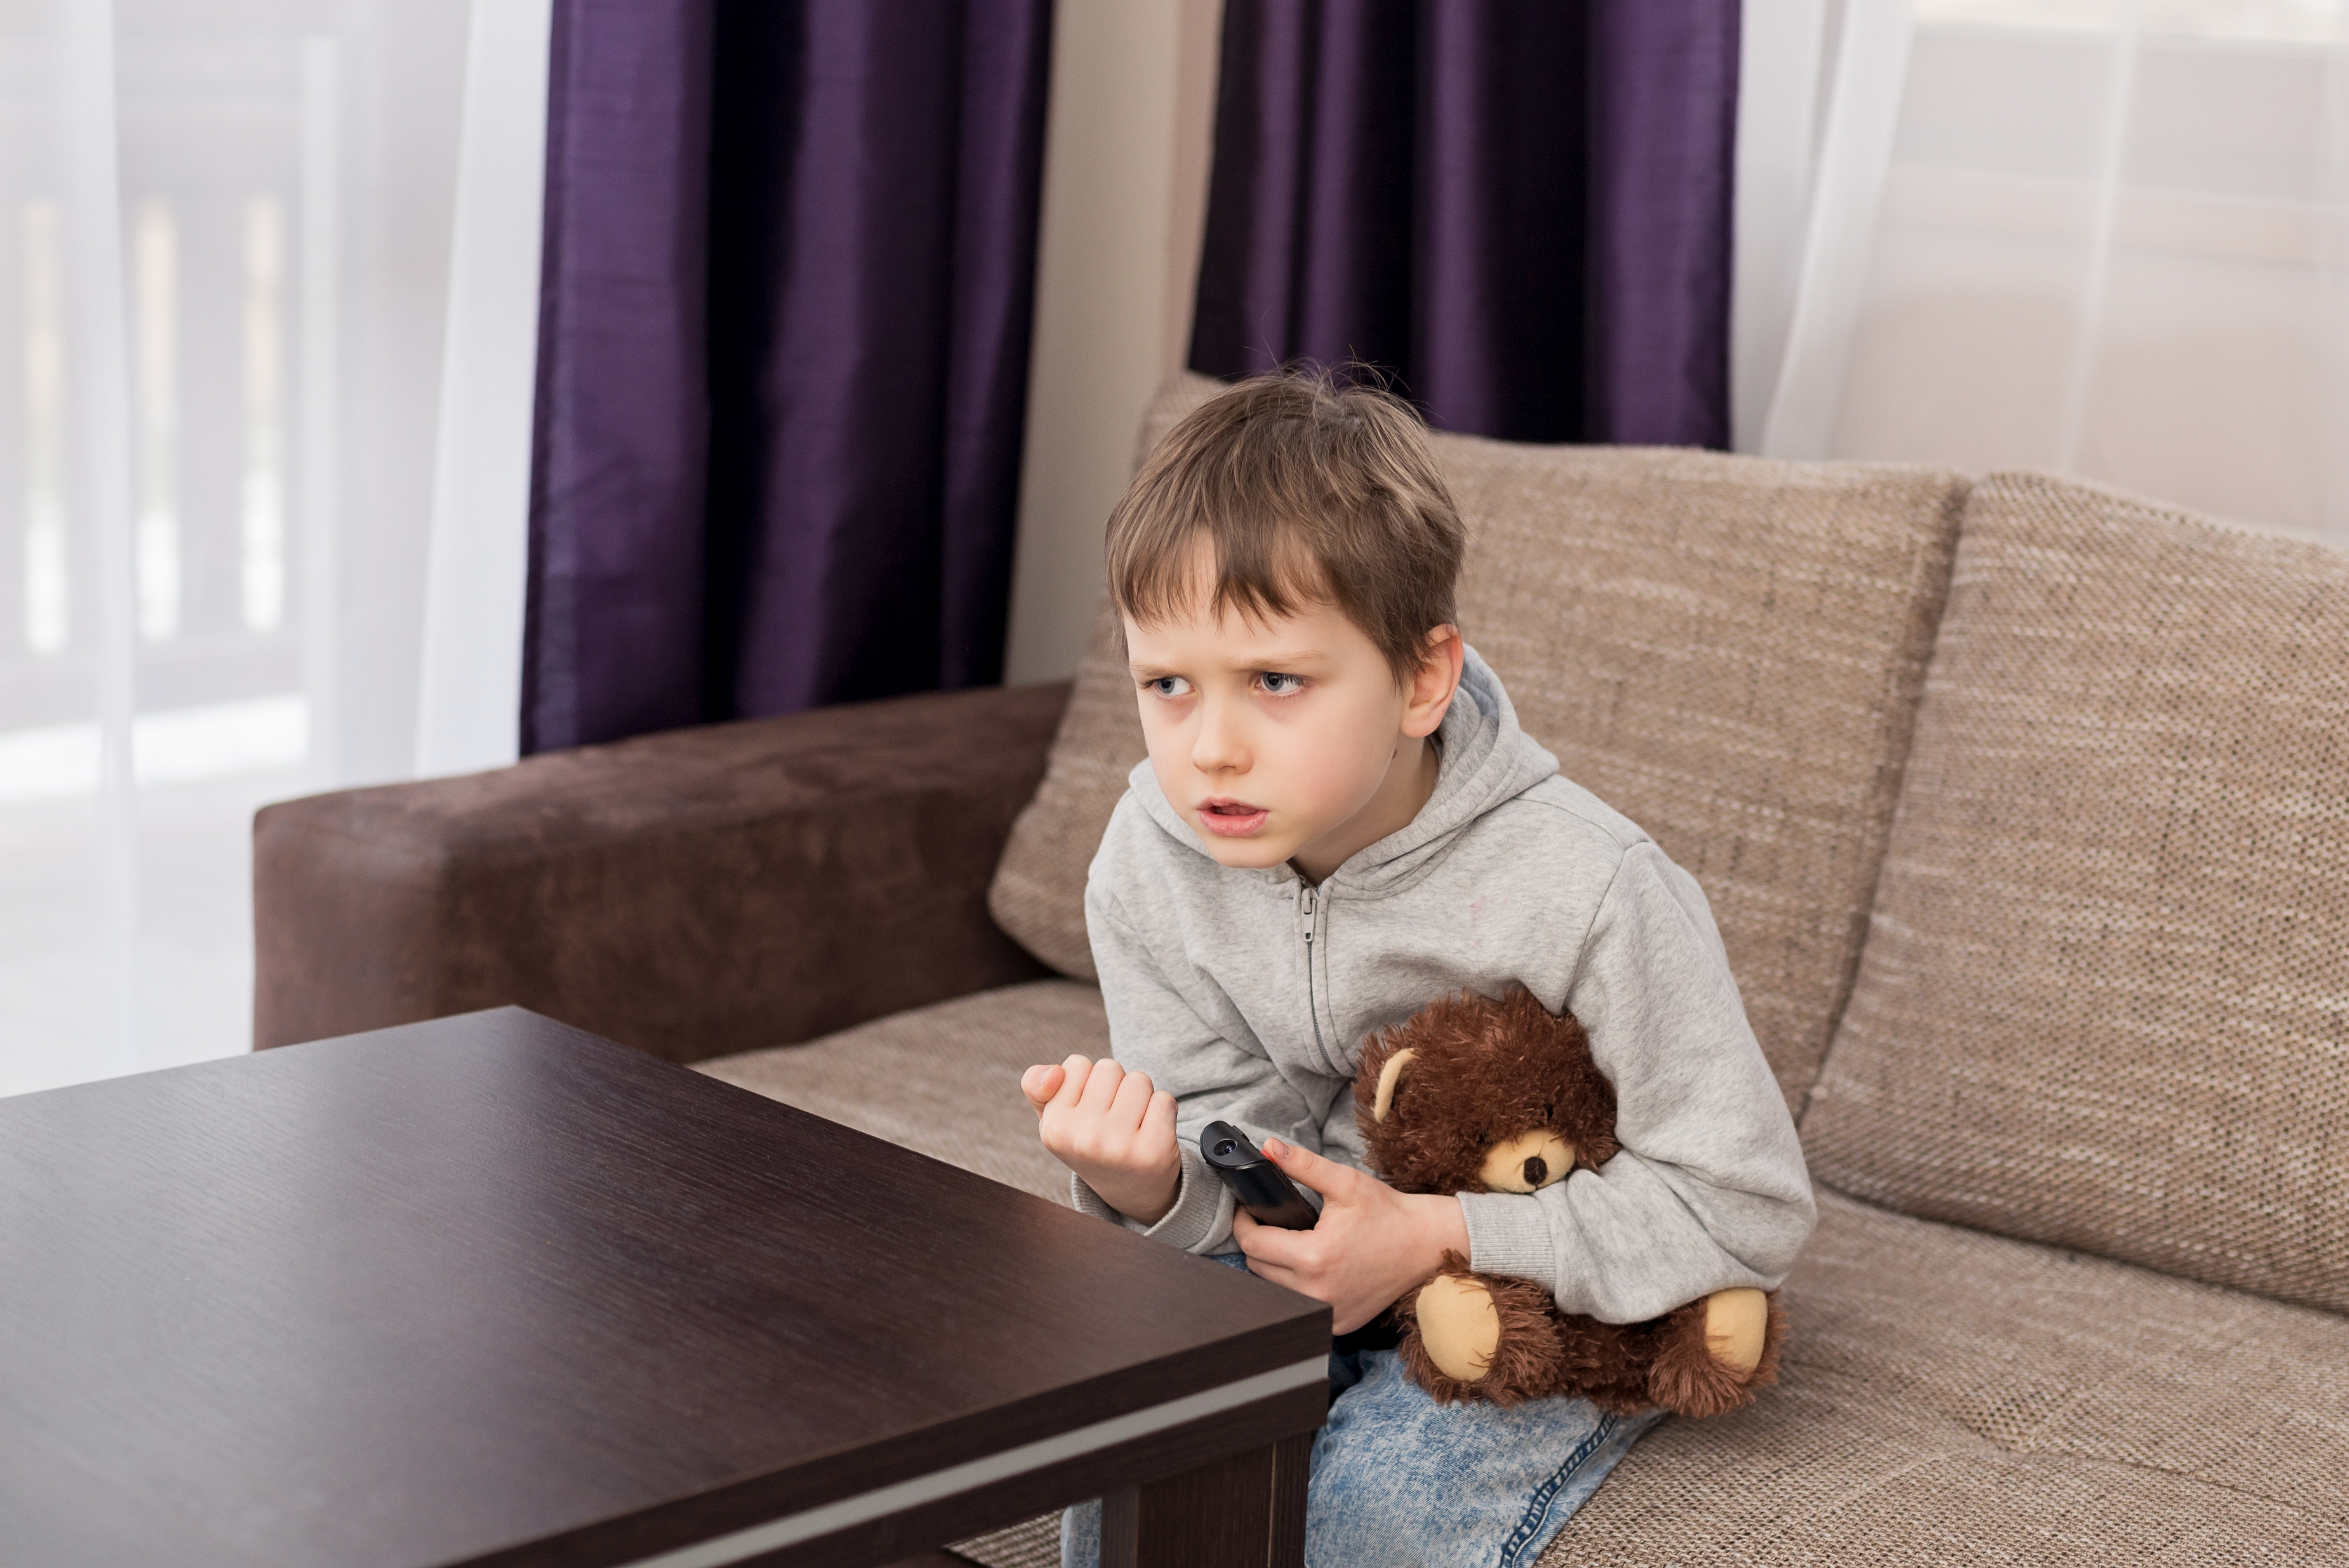 Little boy holding teddy bear and watching TV, looking stressed